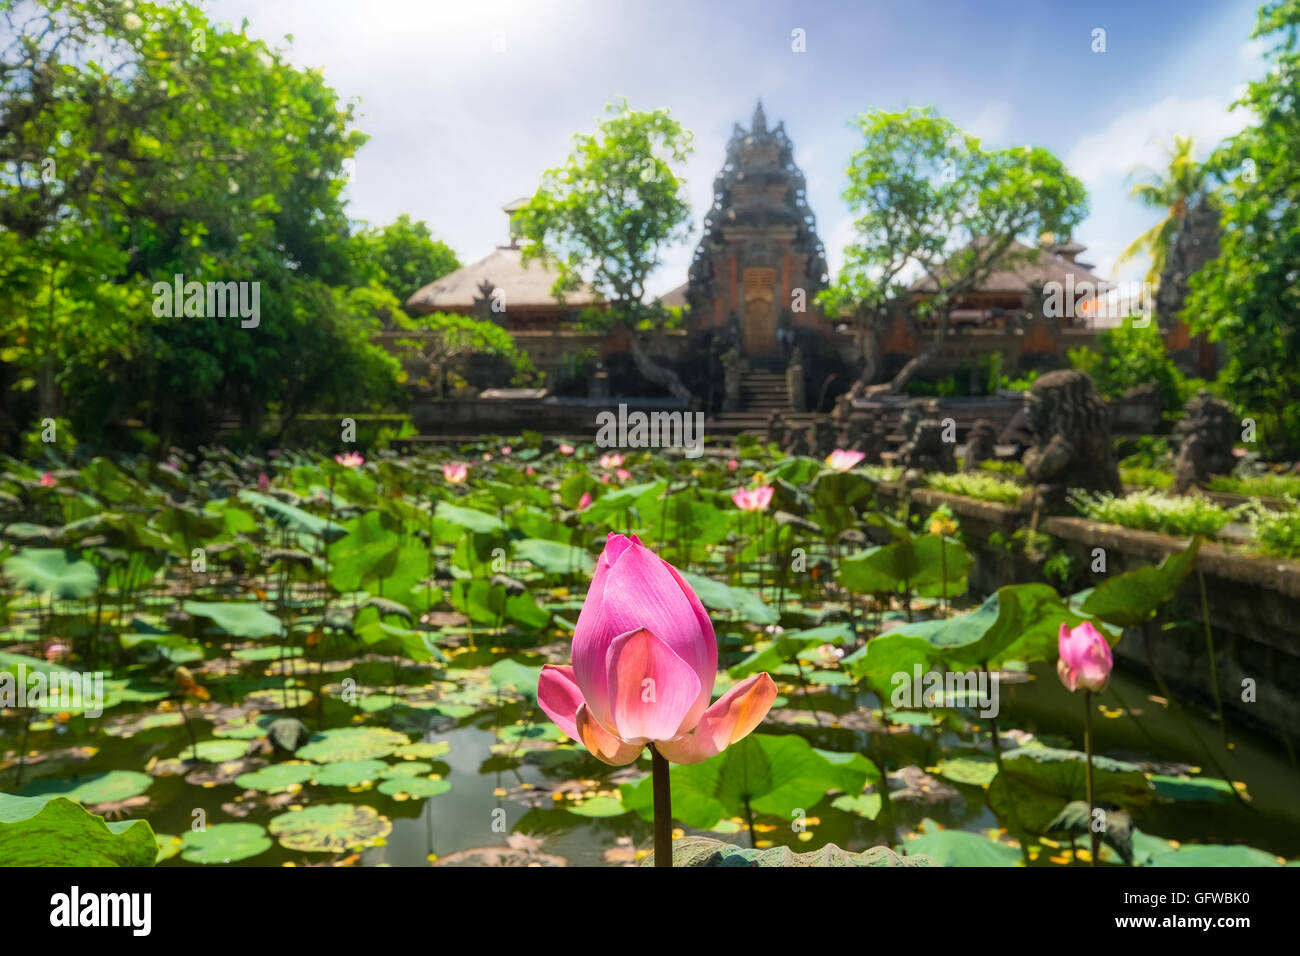 Amazing view of pond with lotus flowers near pura saraswati hindu amazing view of pond with lotus flowers near pura saraswati hindu temple in ubud bali indonesia dhlflorist Choice Image